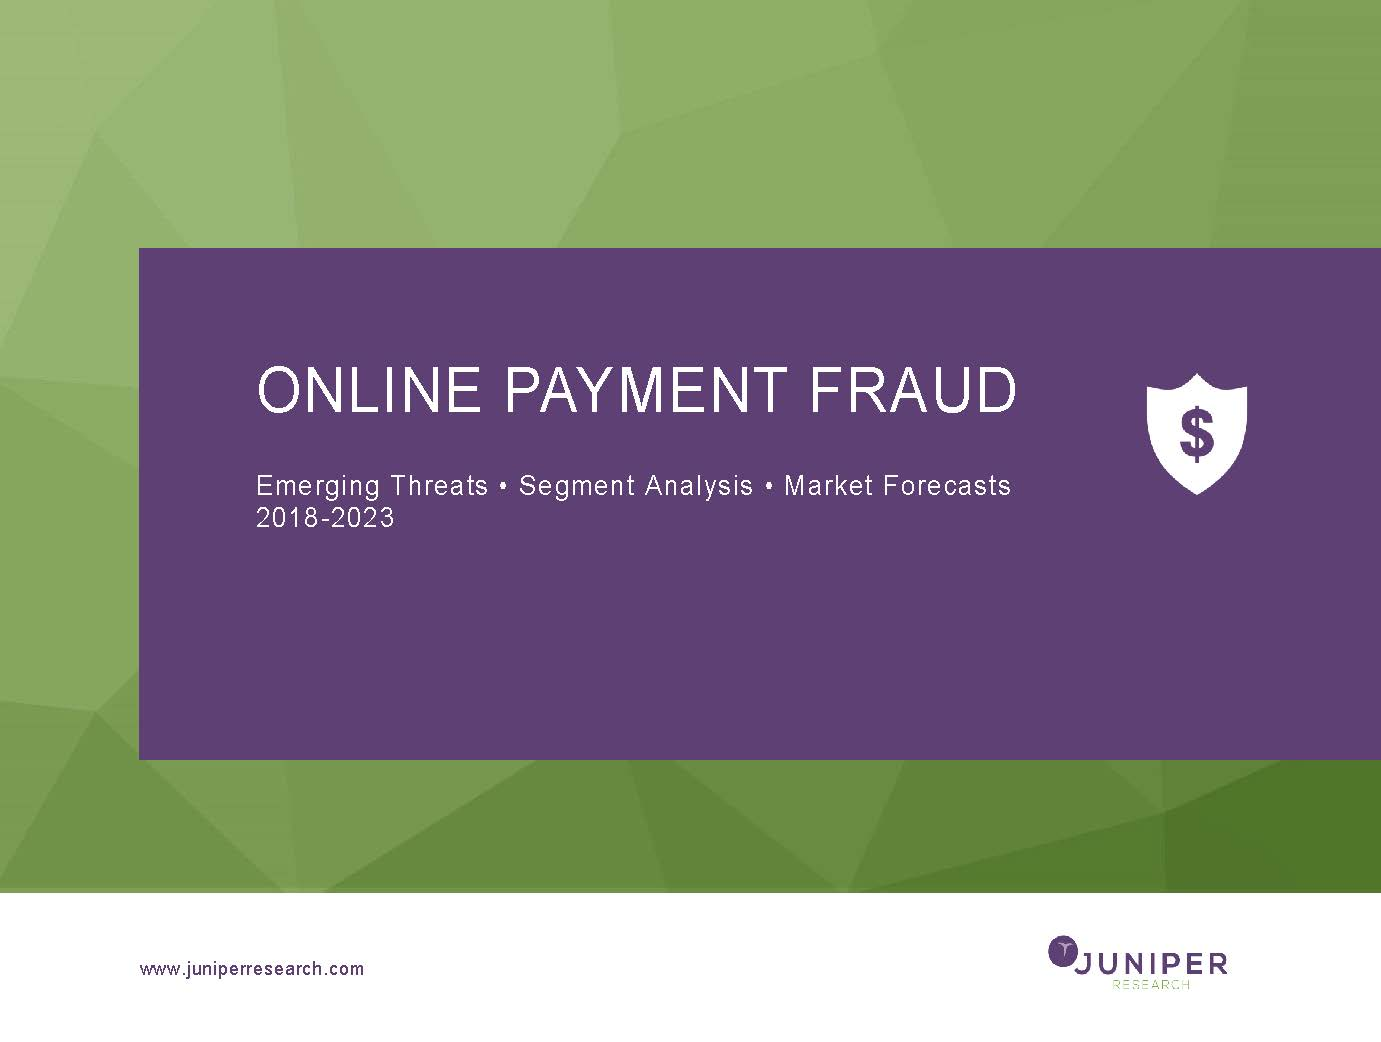 Online Payment Fraud: Emerging Threats, Segment Analysis & Market Forecasts 2018-2023